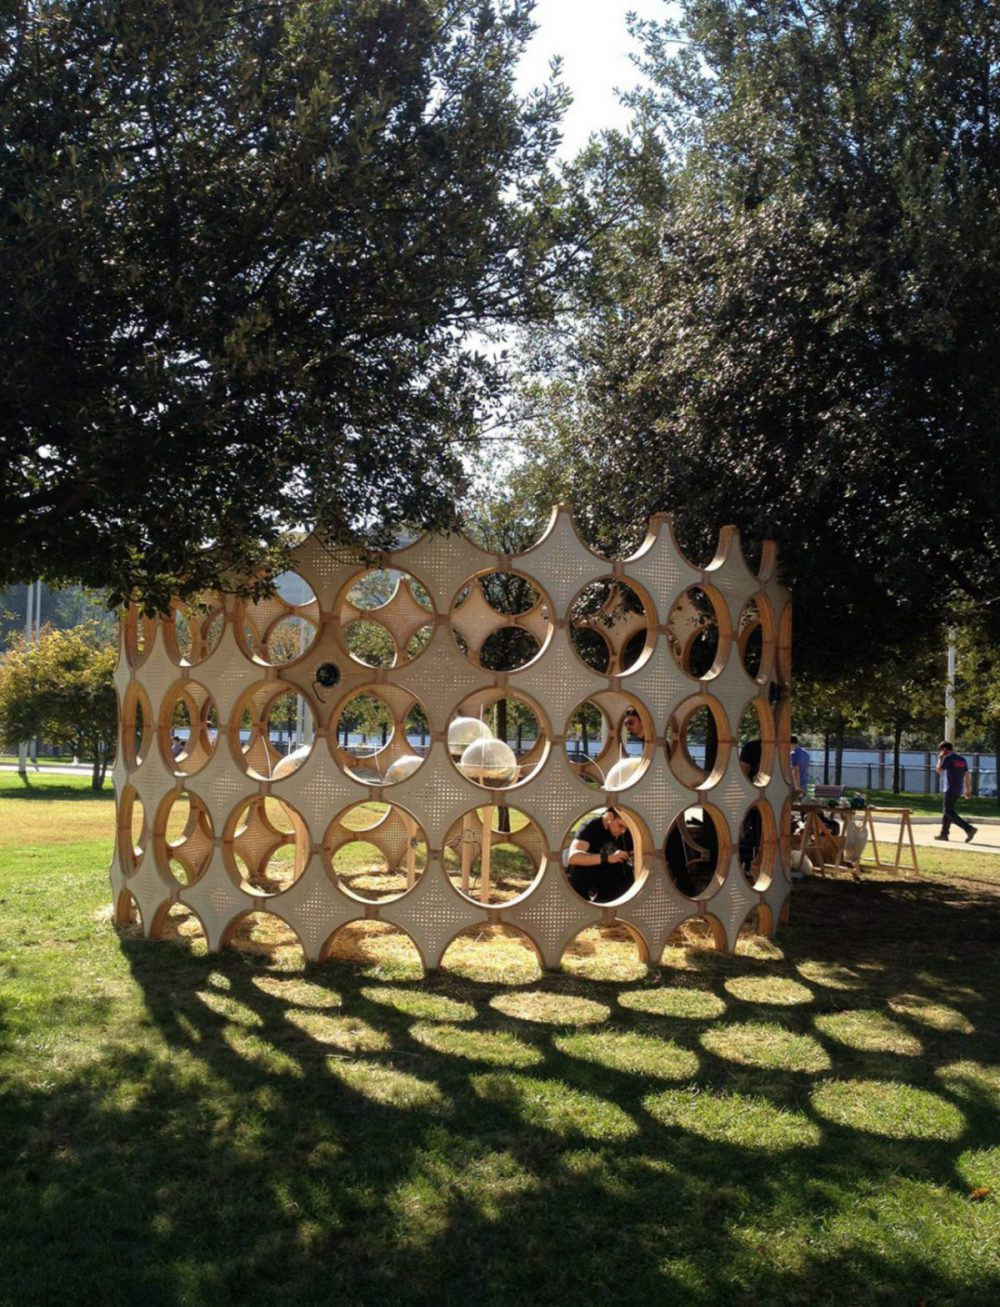 Wooden pavilion with geometric shapes